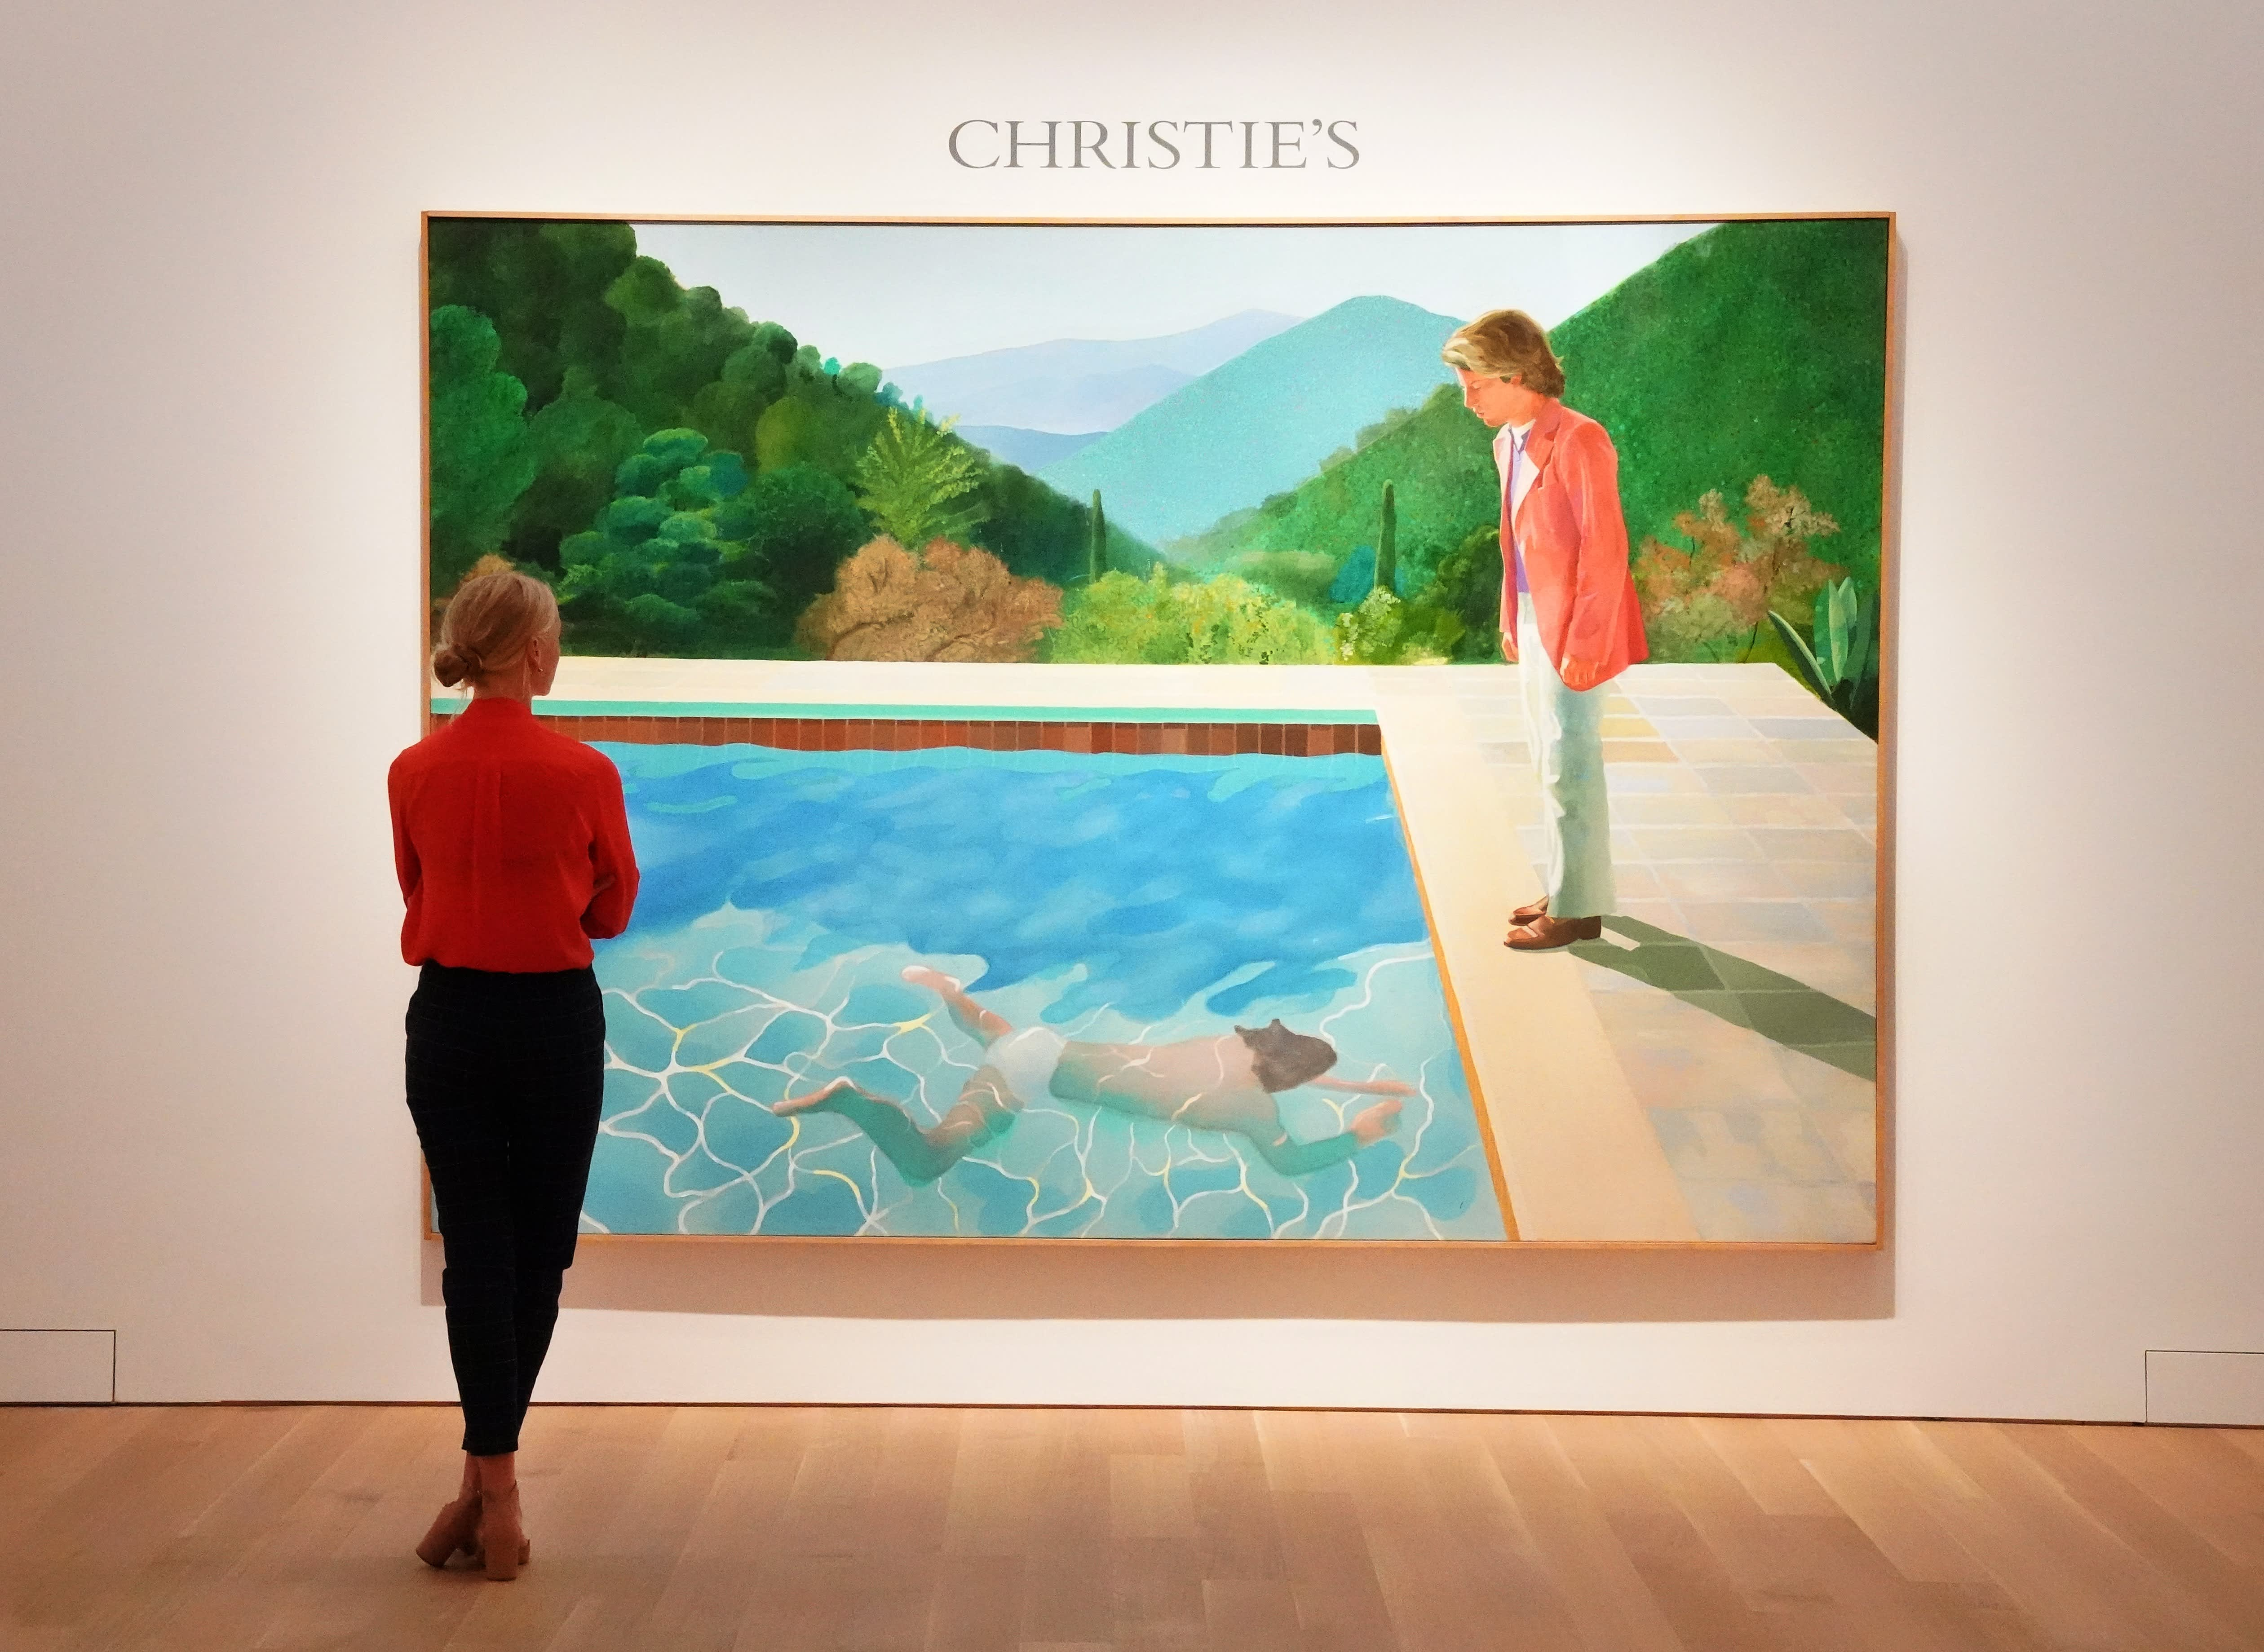 How Christie's and Sotheby's compete to auction pricey art